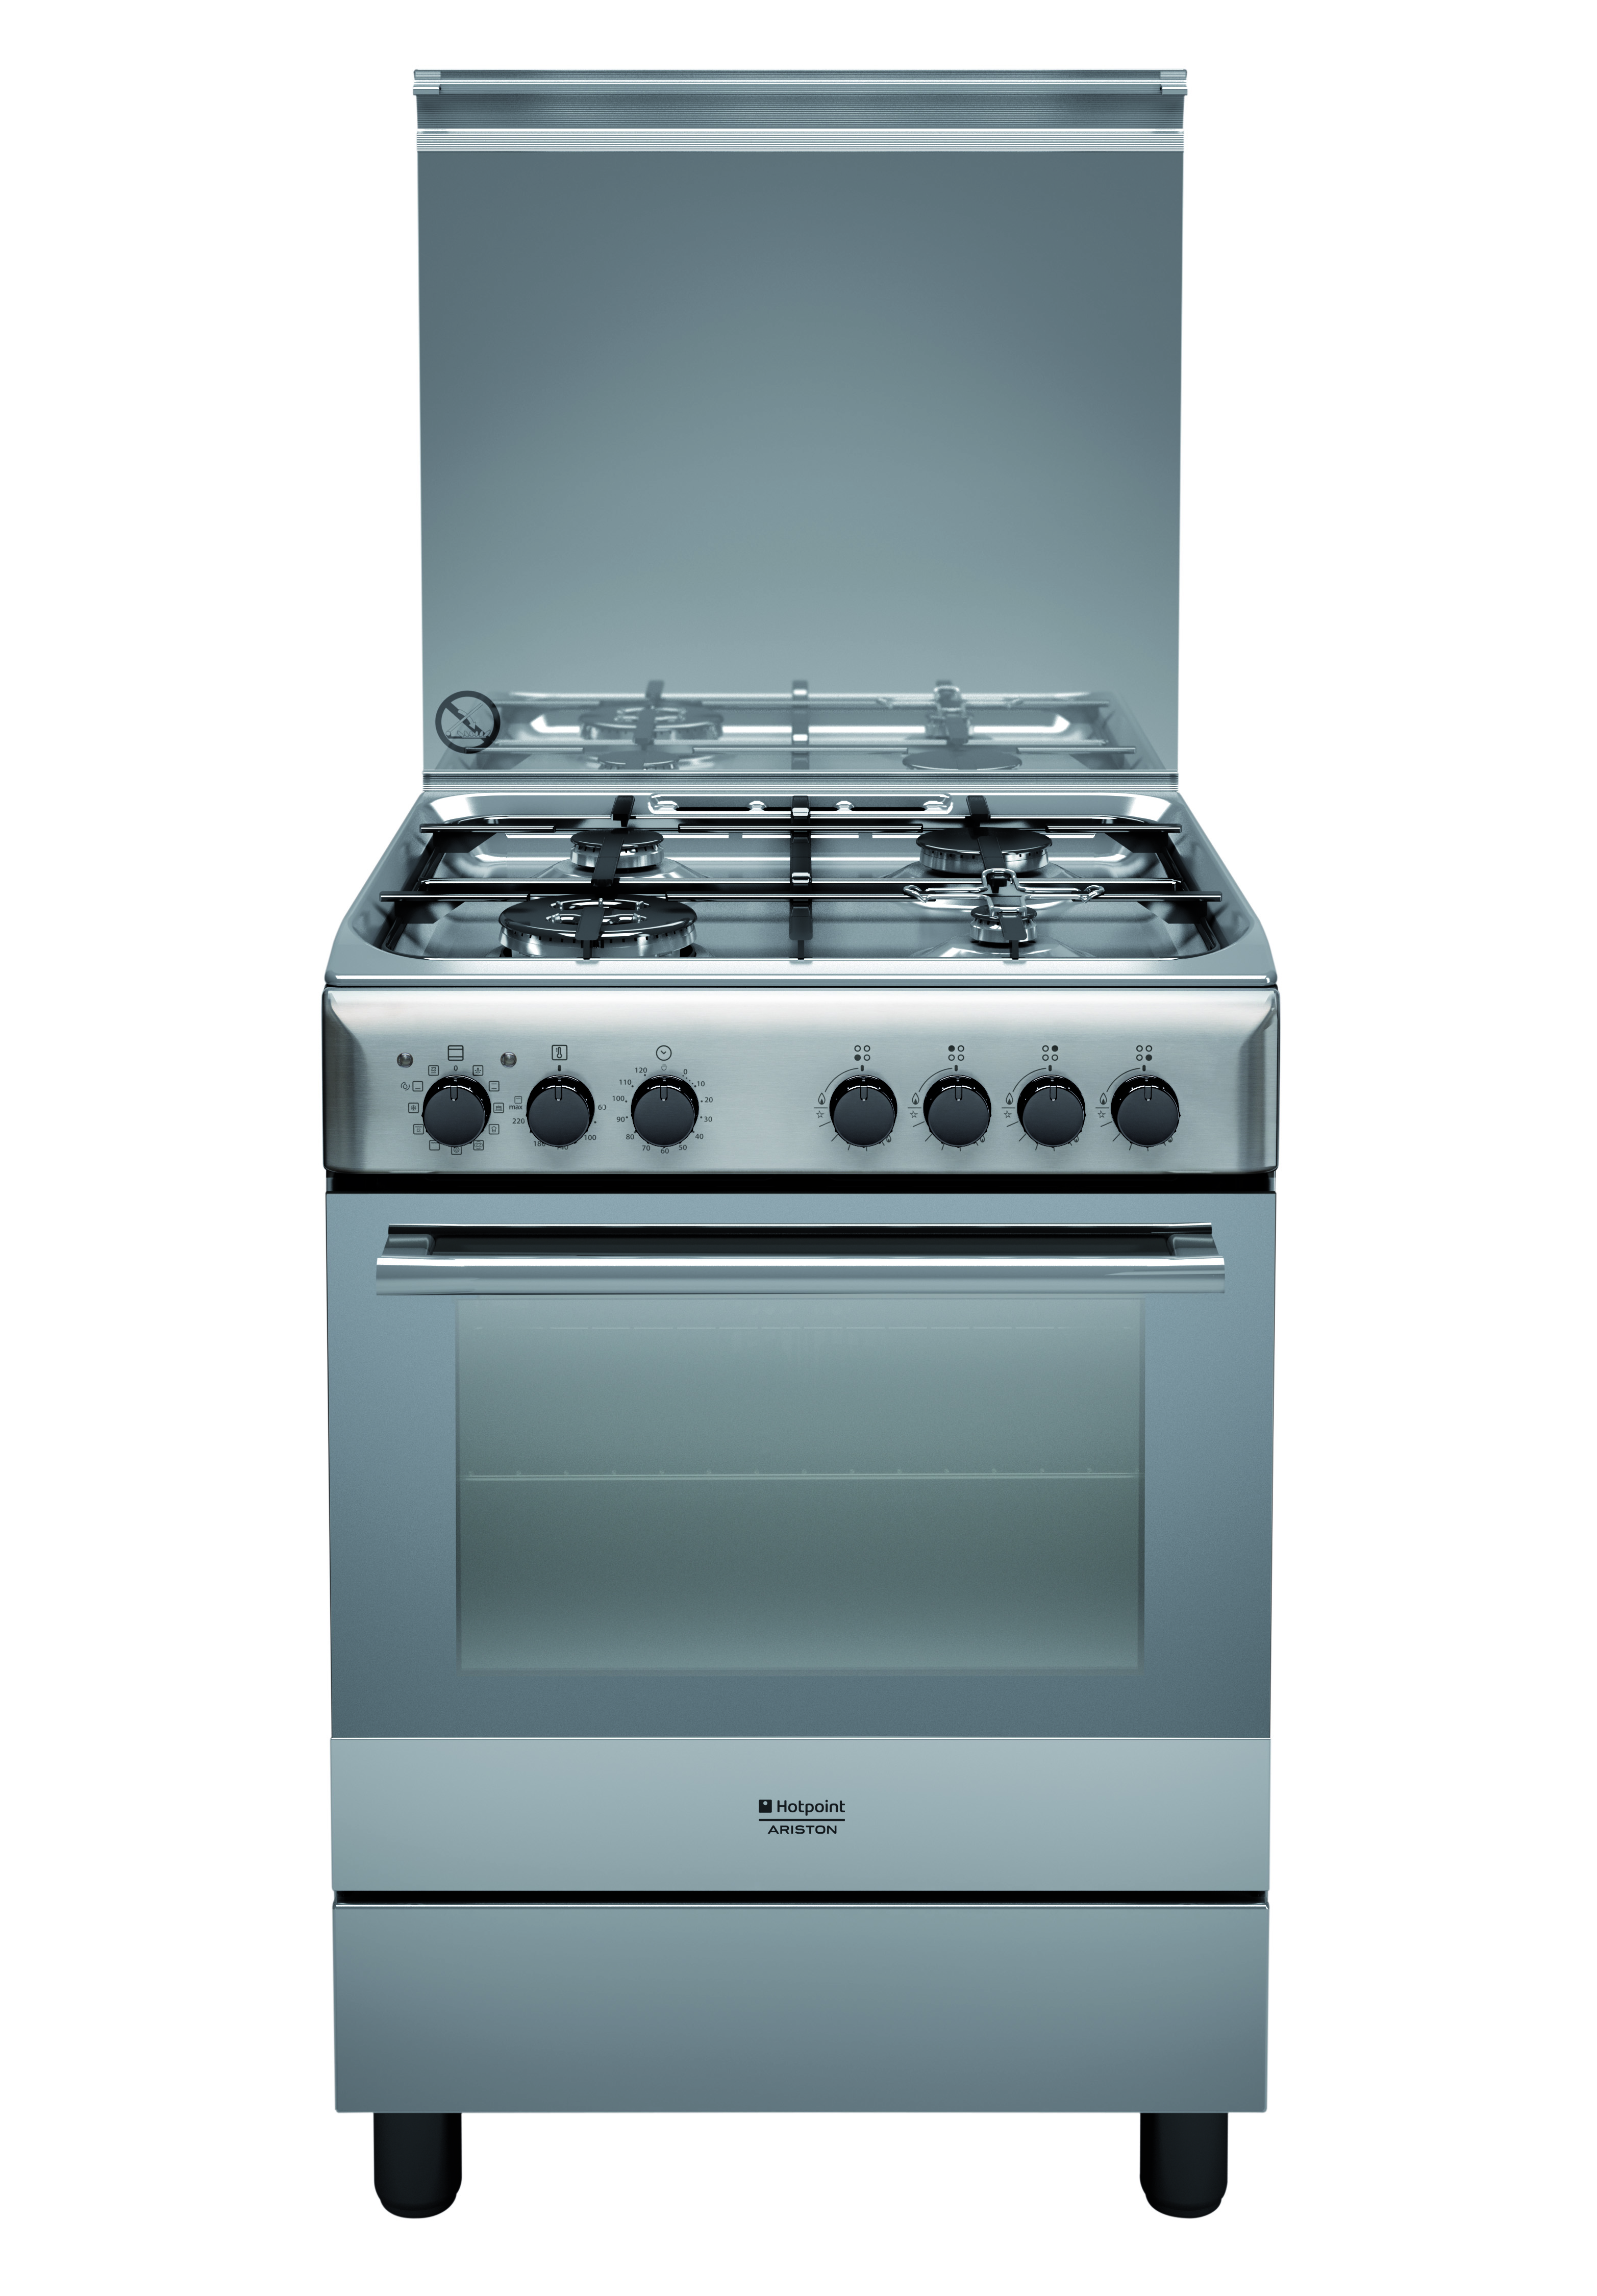 CUCINA MONOBLOCCO HOTPOINT H6TMH2AFXIT - BbmShop - Elettrodomestici ...